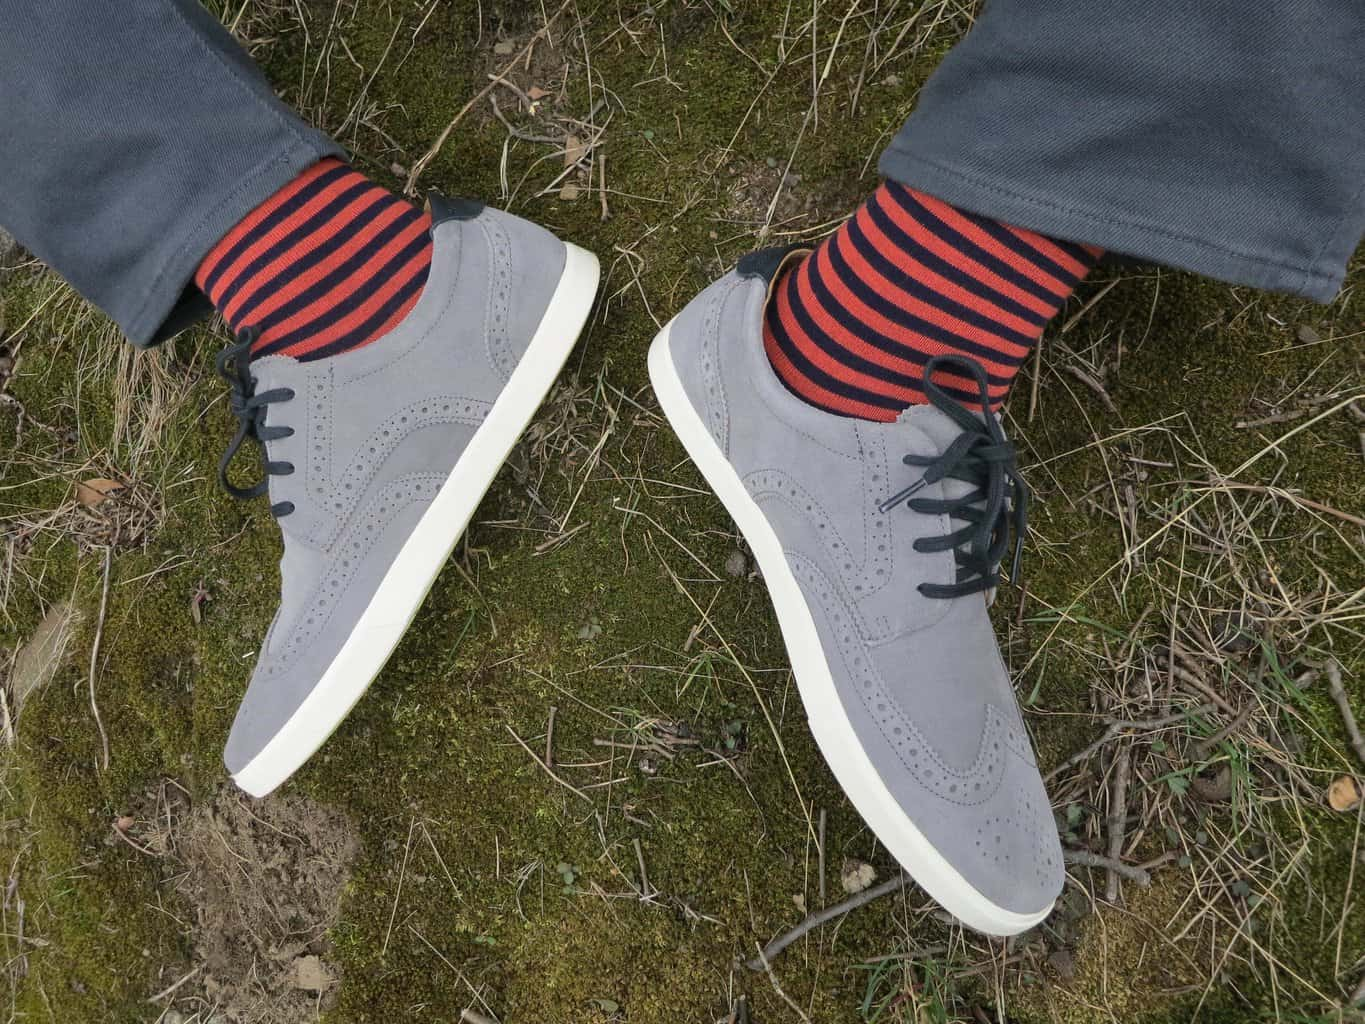 Unique Gifts for Men: American Made Mens Fashion Socks from This Night